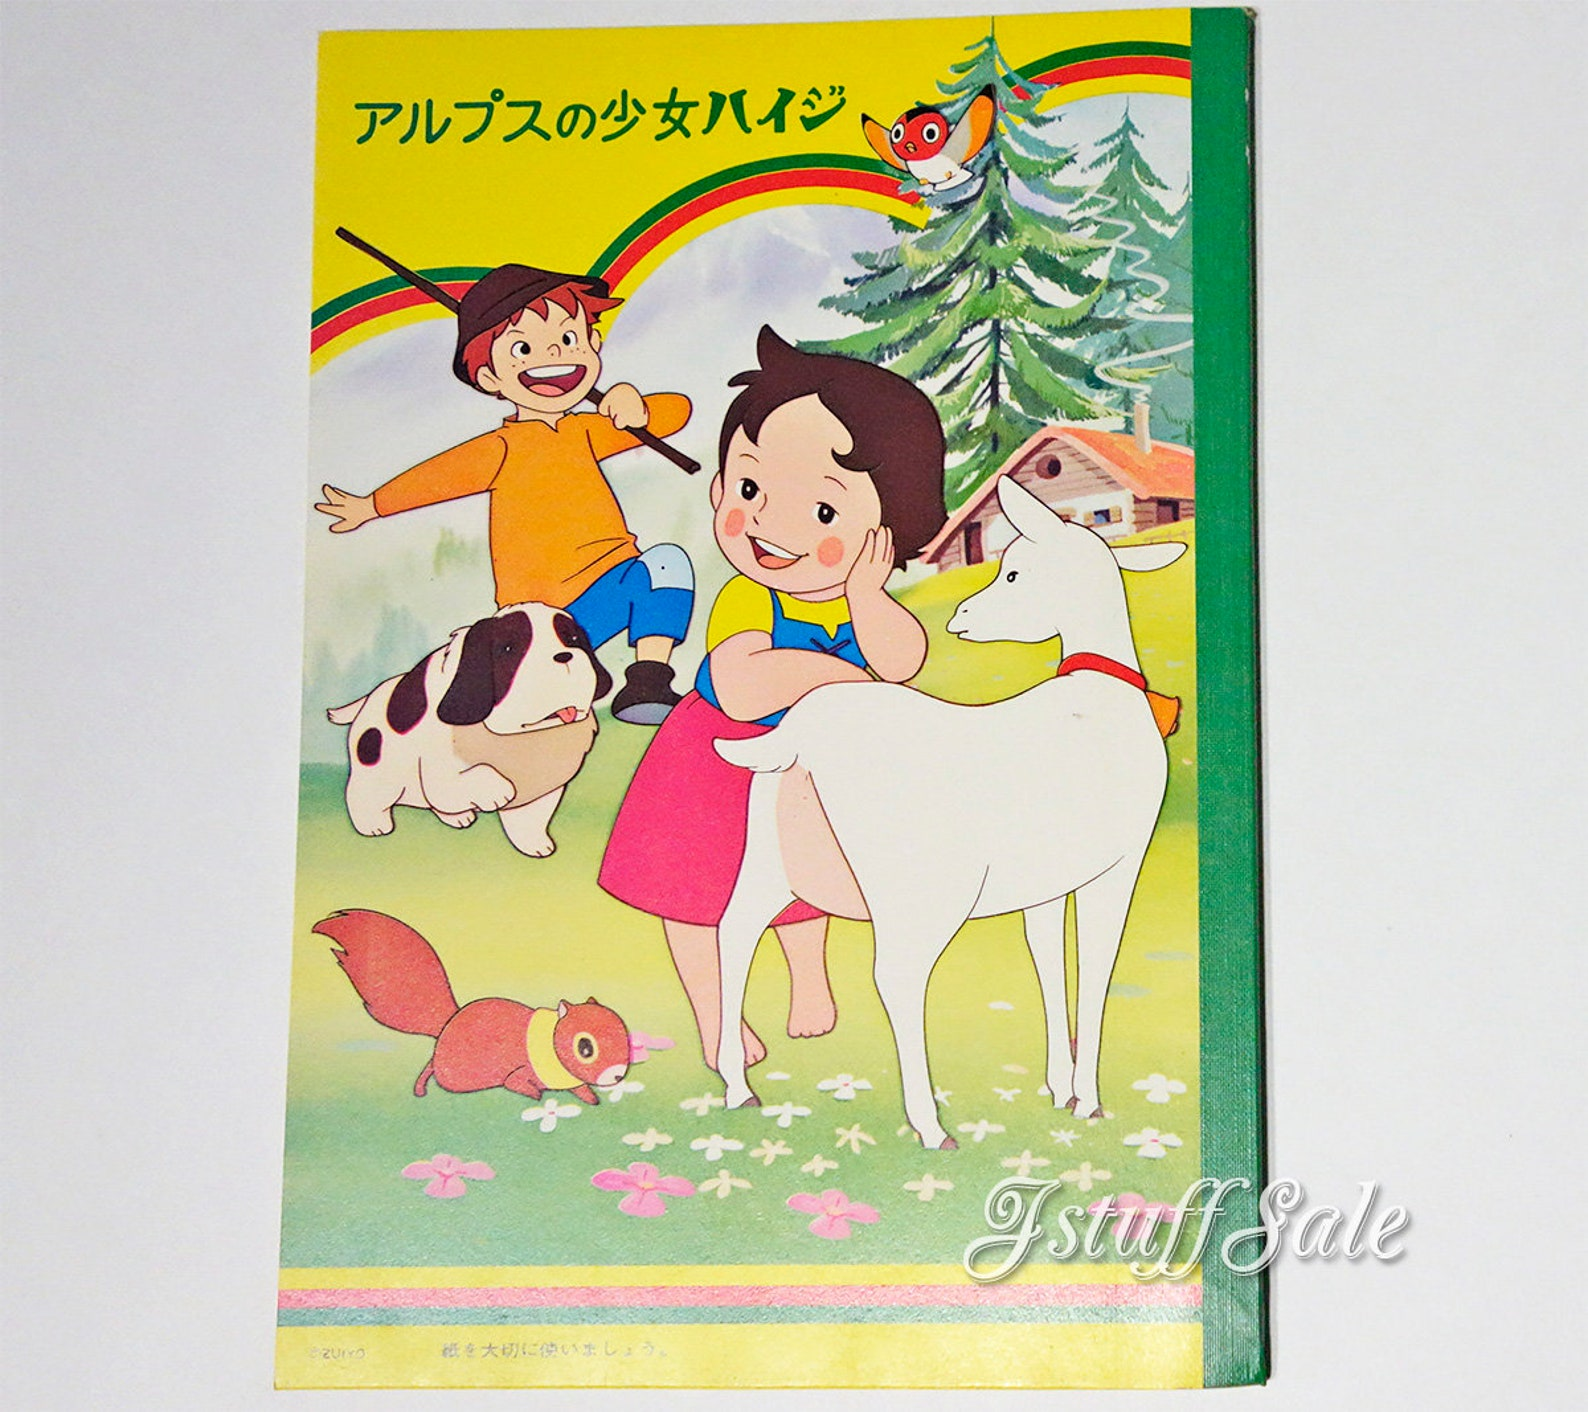 Heidi, Girl of the Alps - 70's vintage Japanese notebook/drawing book